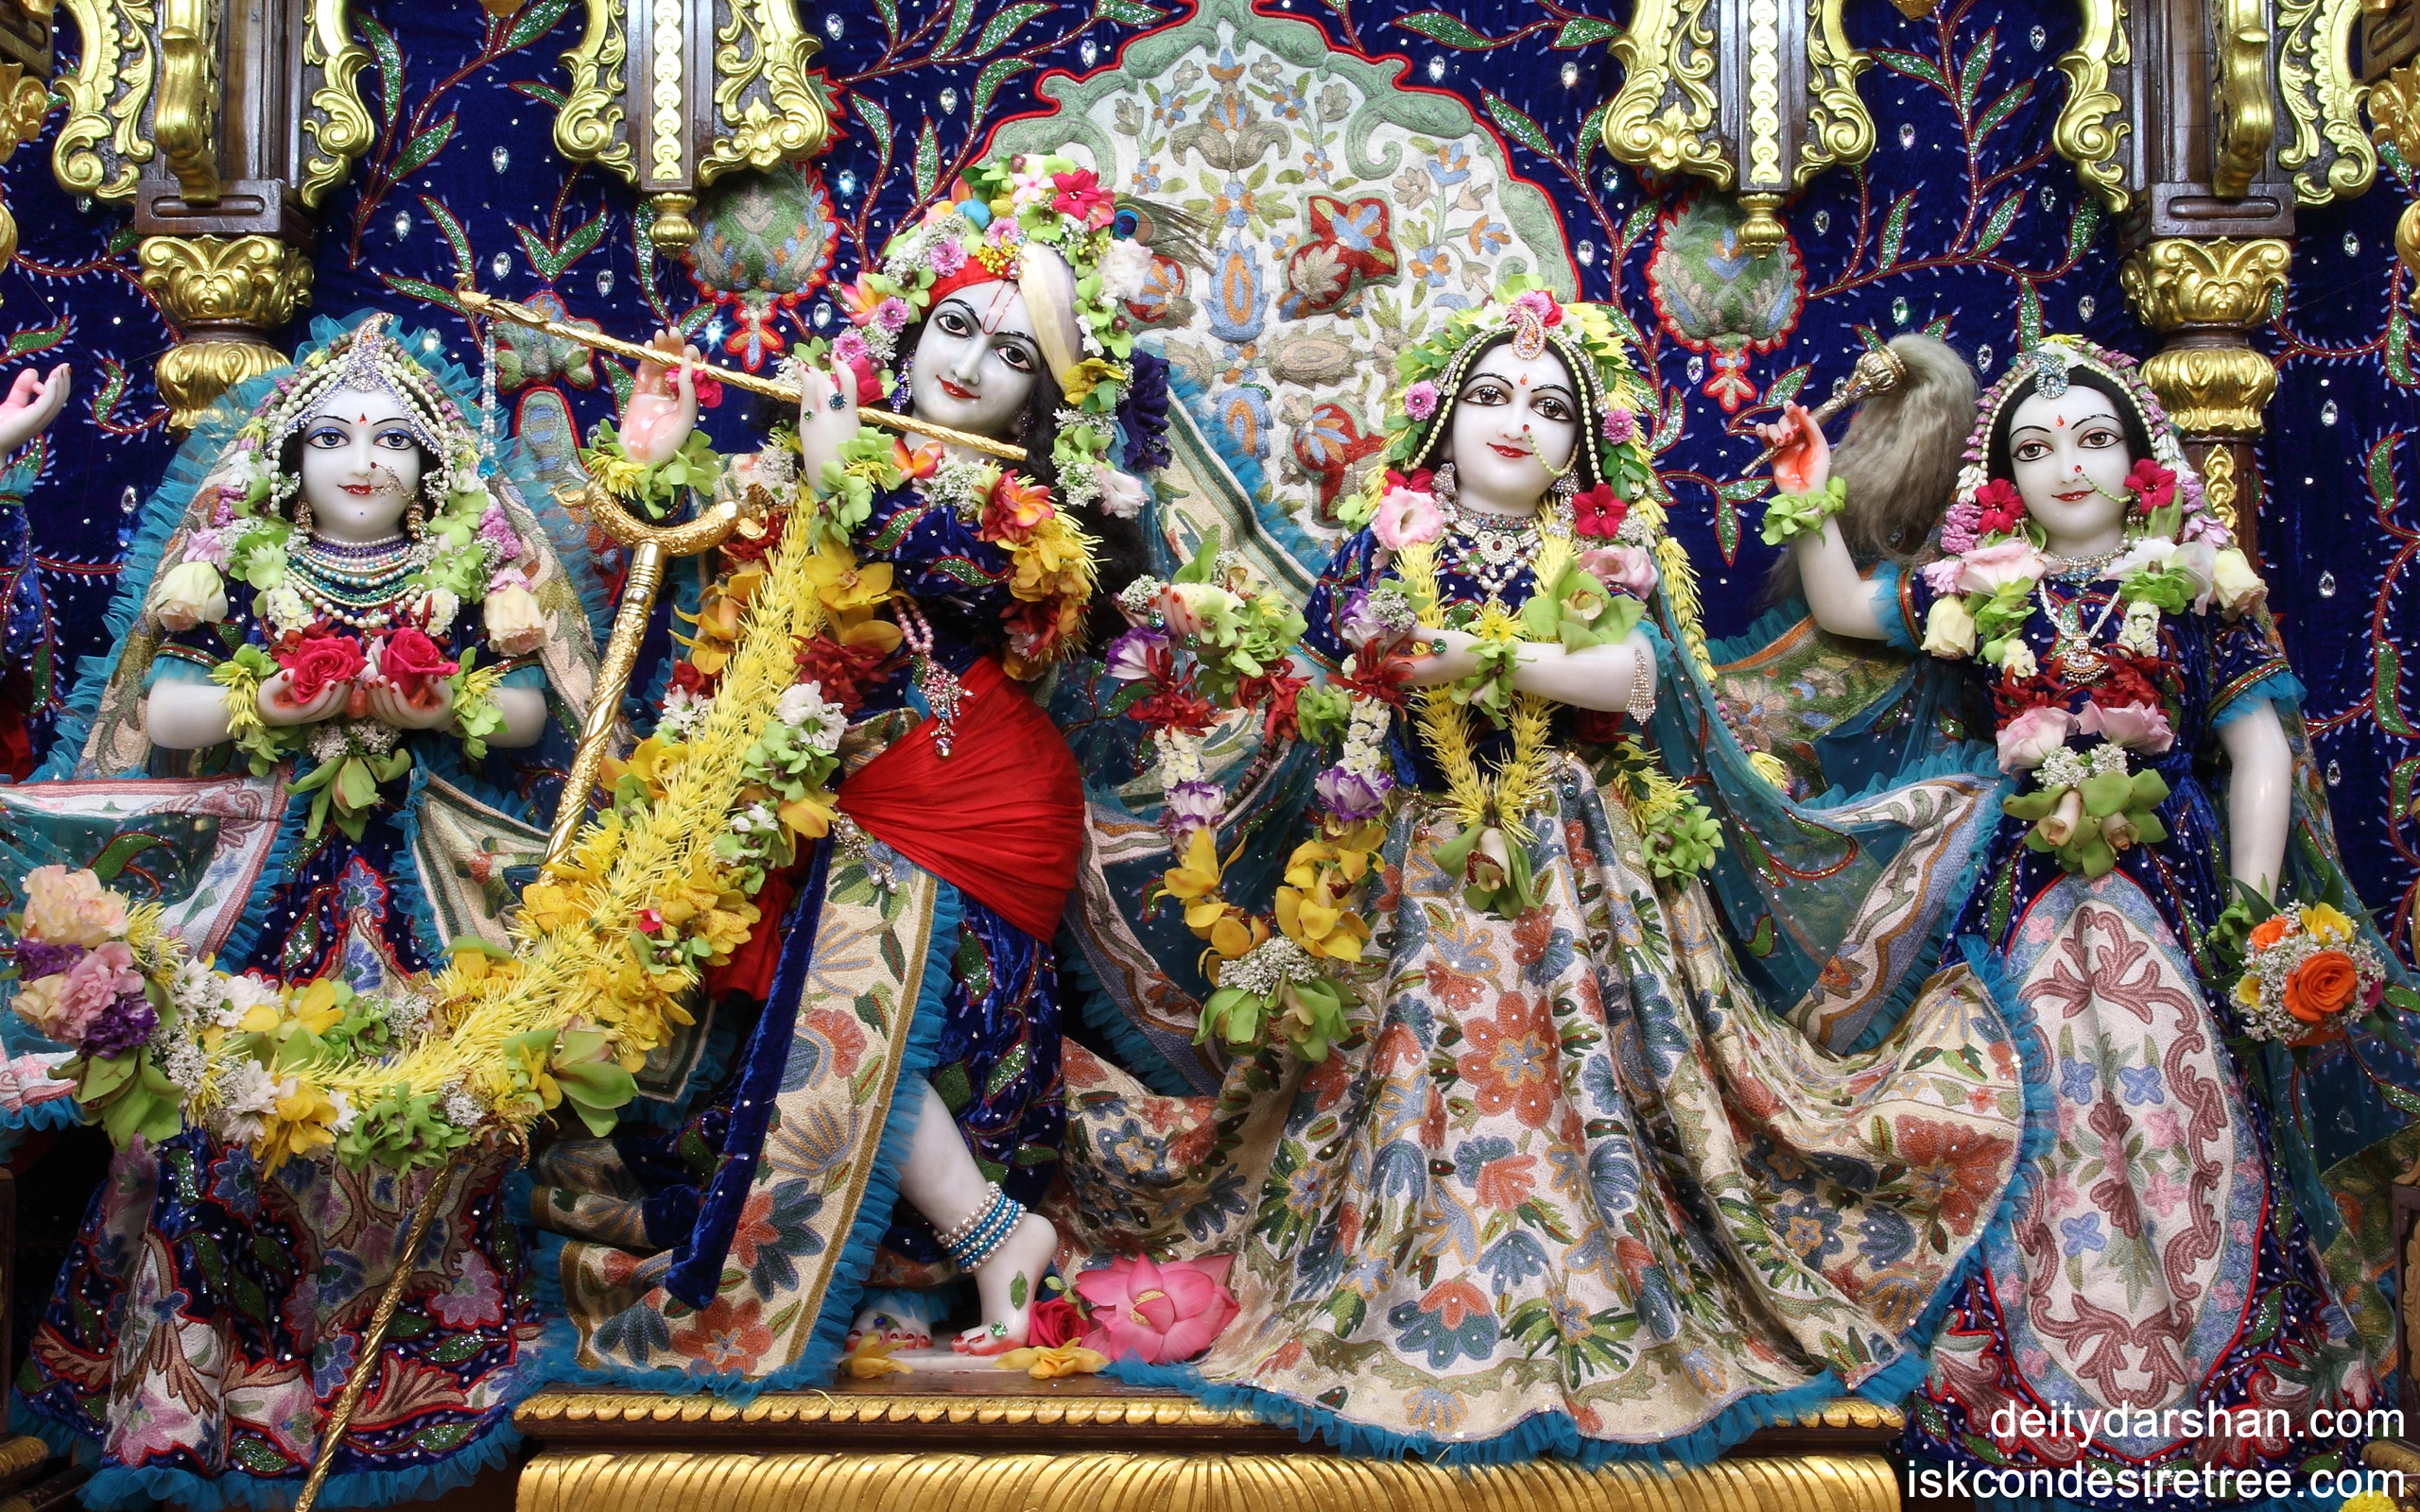 Sri Sri Radha Gopinath Lalita Vishakha Wallpaper (018) Size 2560x1600 Download